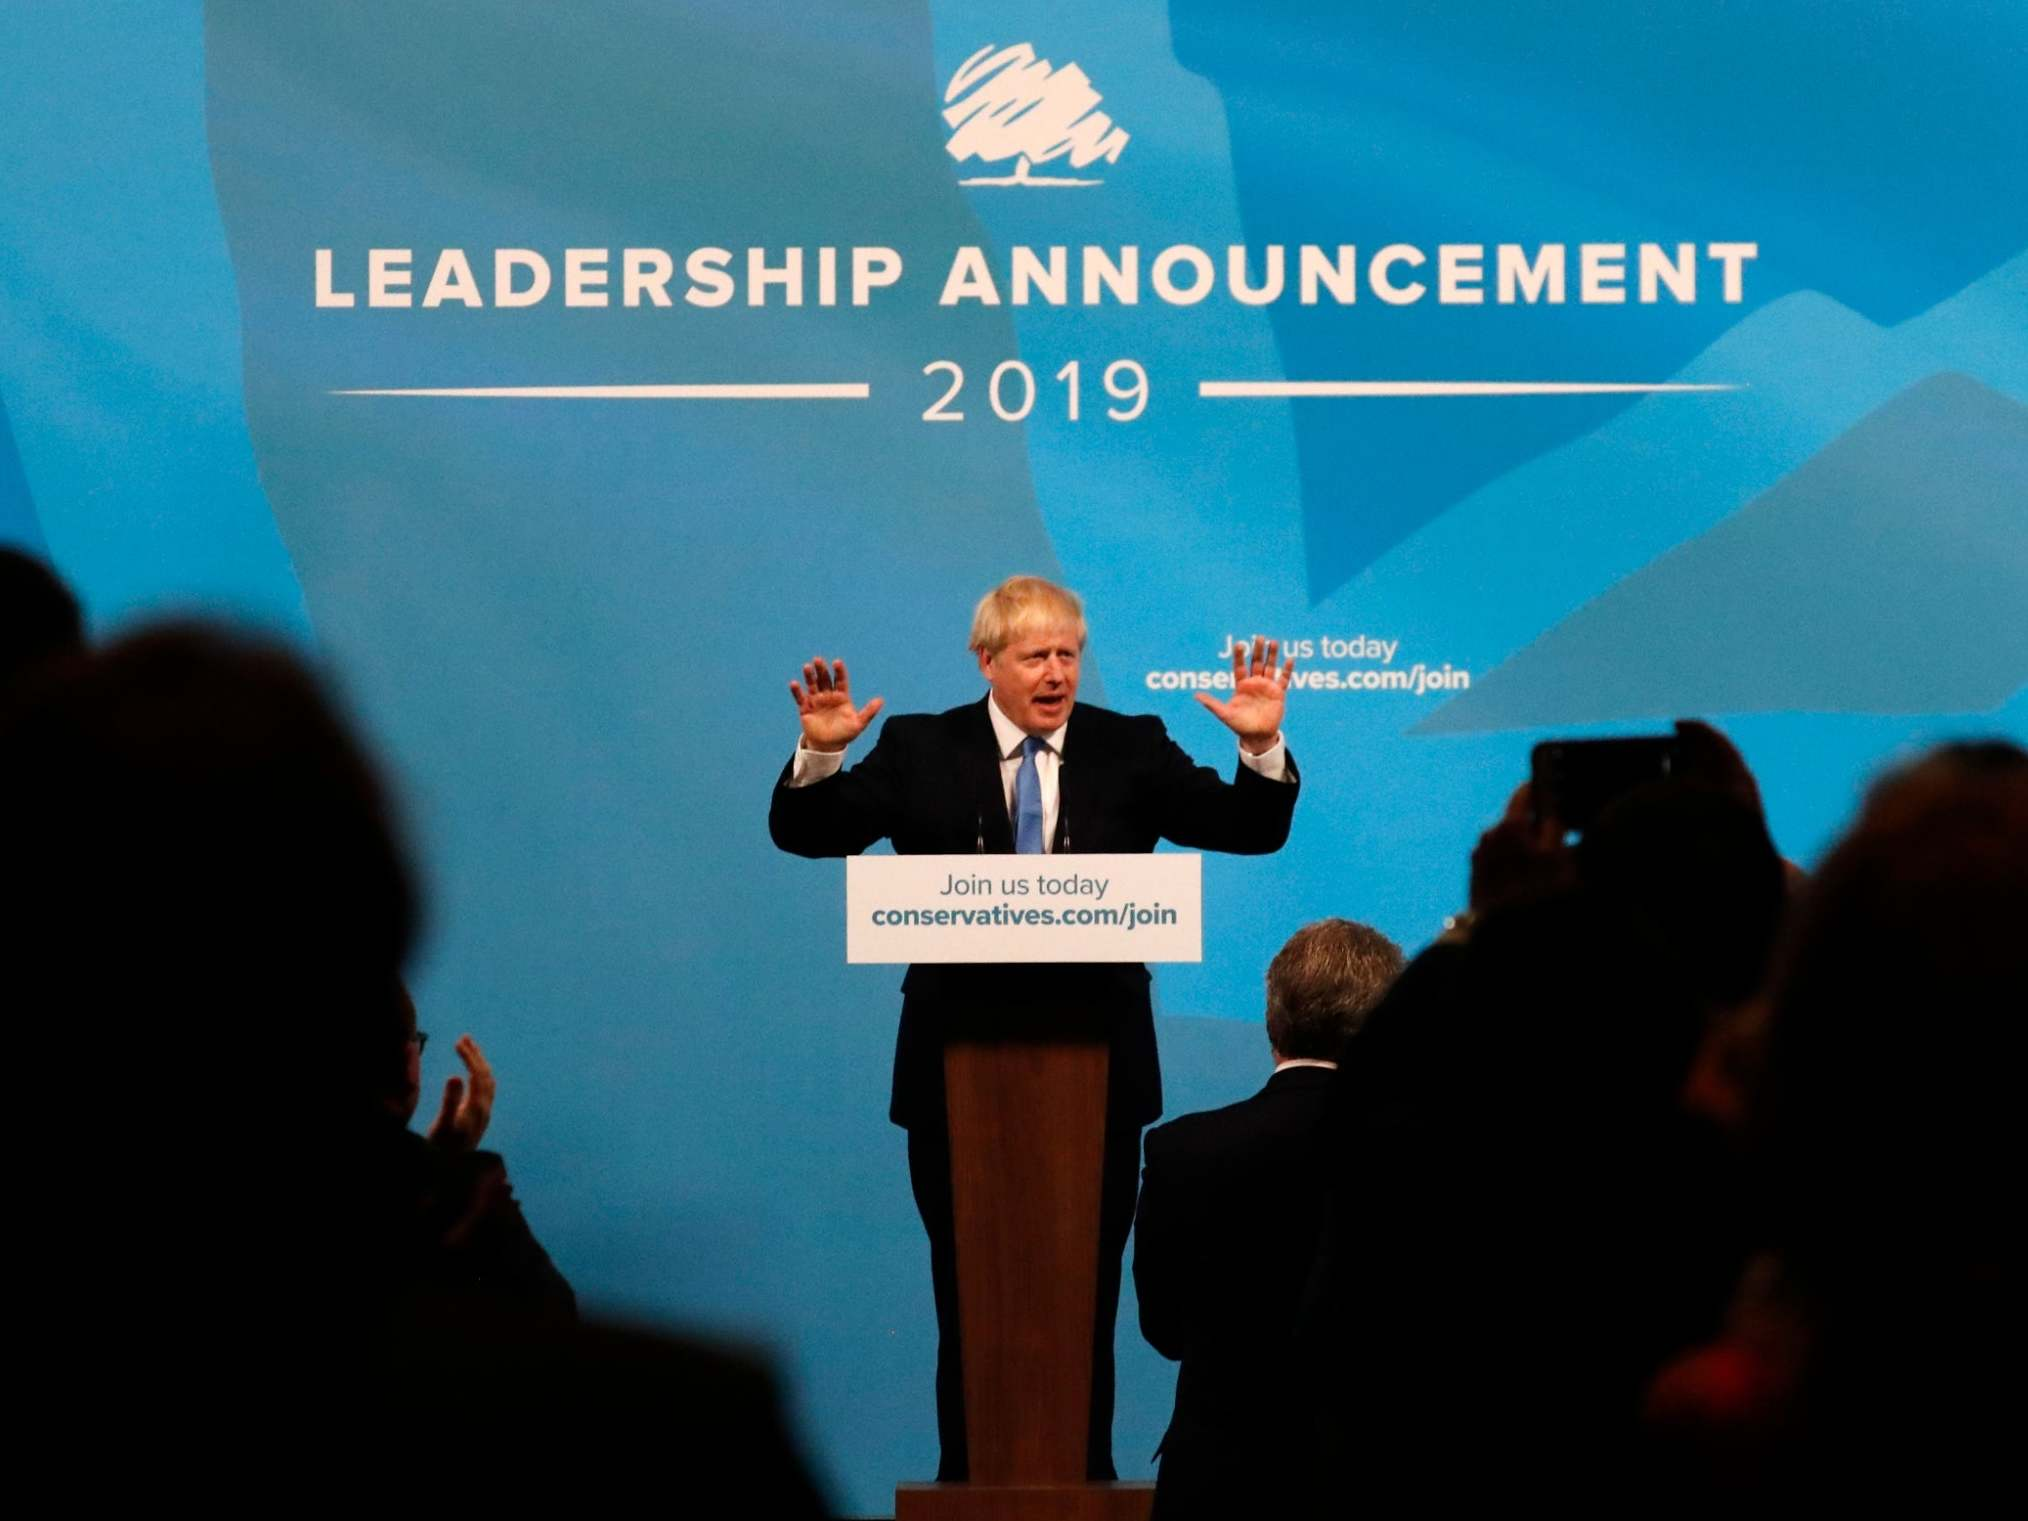 Boris Johnson news - live: New PM labelled 'racist liar' amid criticism at home, while Trump offers congratulations from US